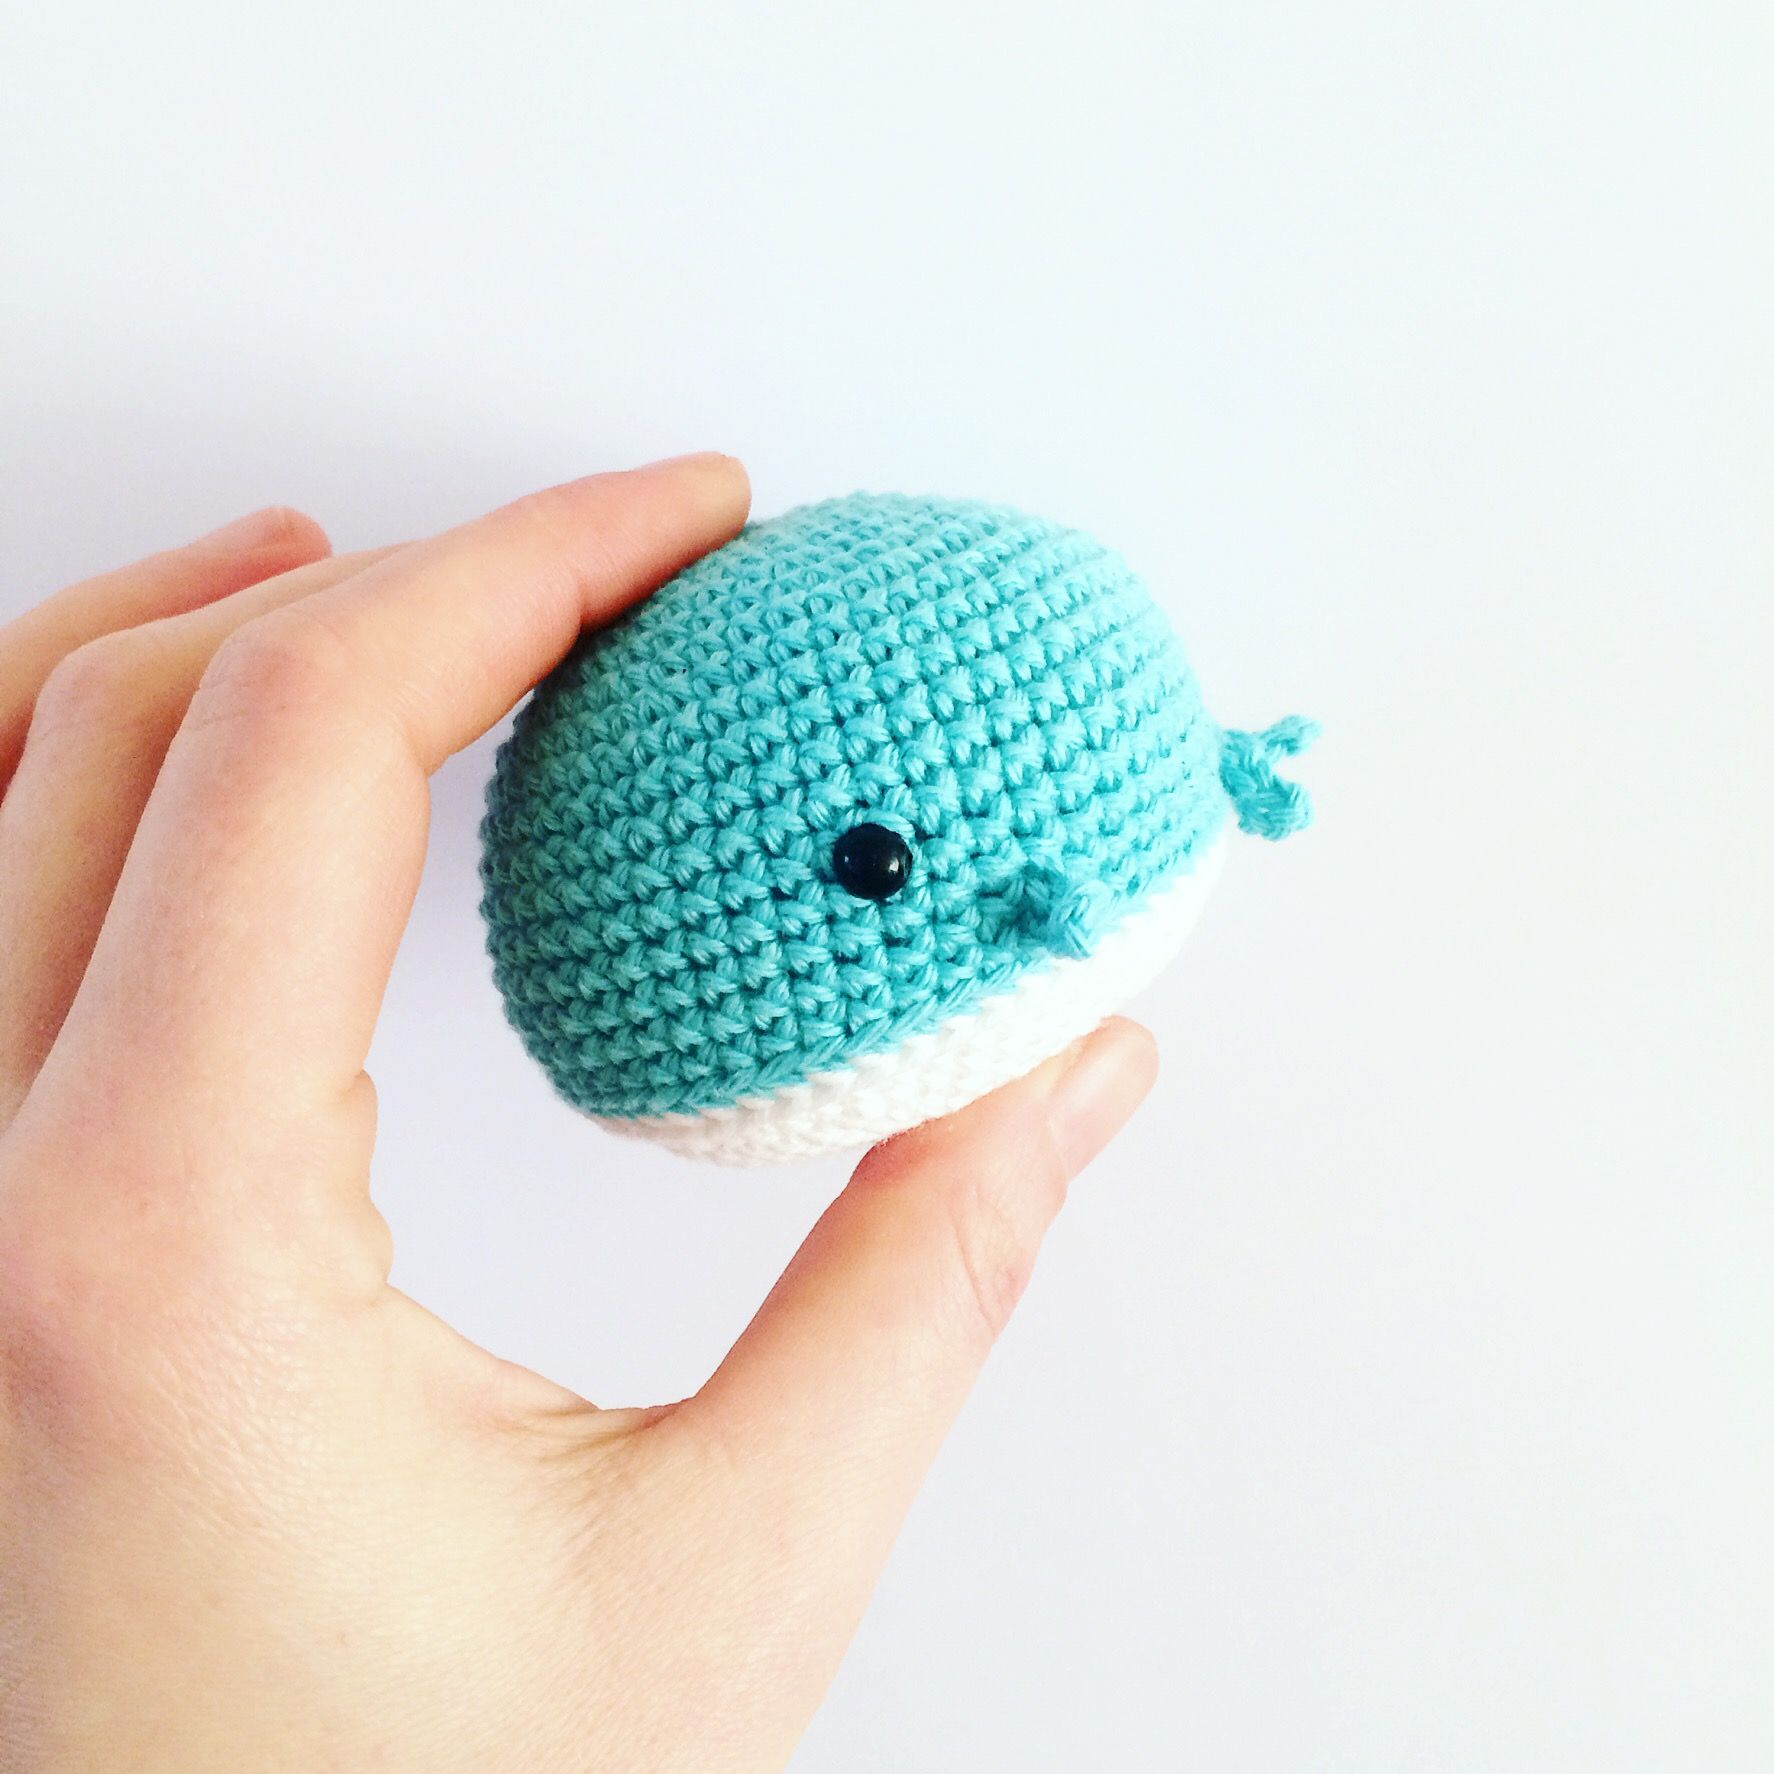 Amigurumi Christmas Ornaments Patterns : Amigurumi Whale - FREE Crochet Pattern / Tutorial FREE ...